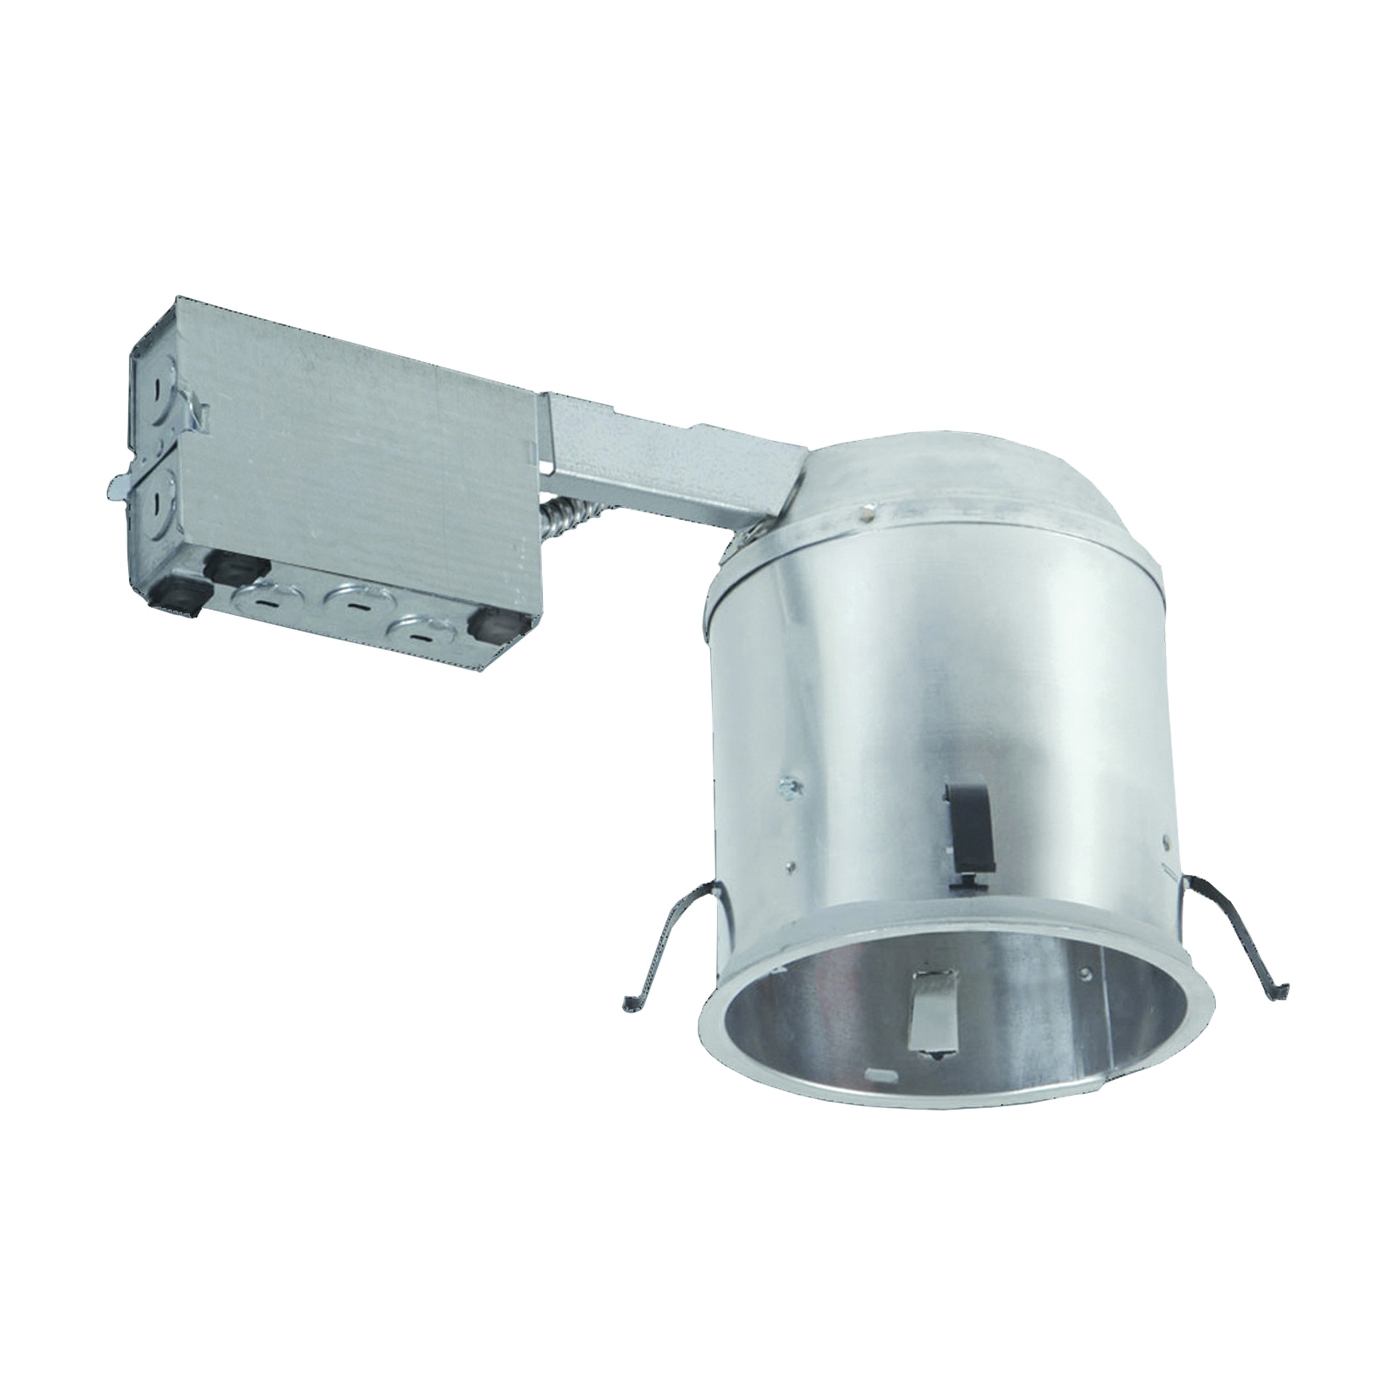 Picture of Halo 11888778 Light Housing, 6 in Dia Recessed Can, Aluminum